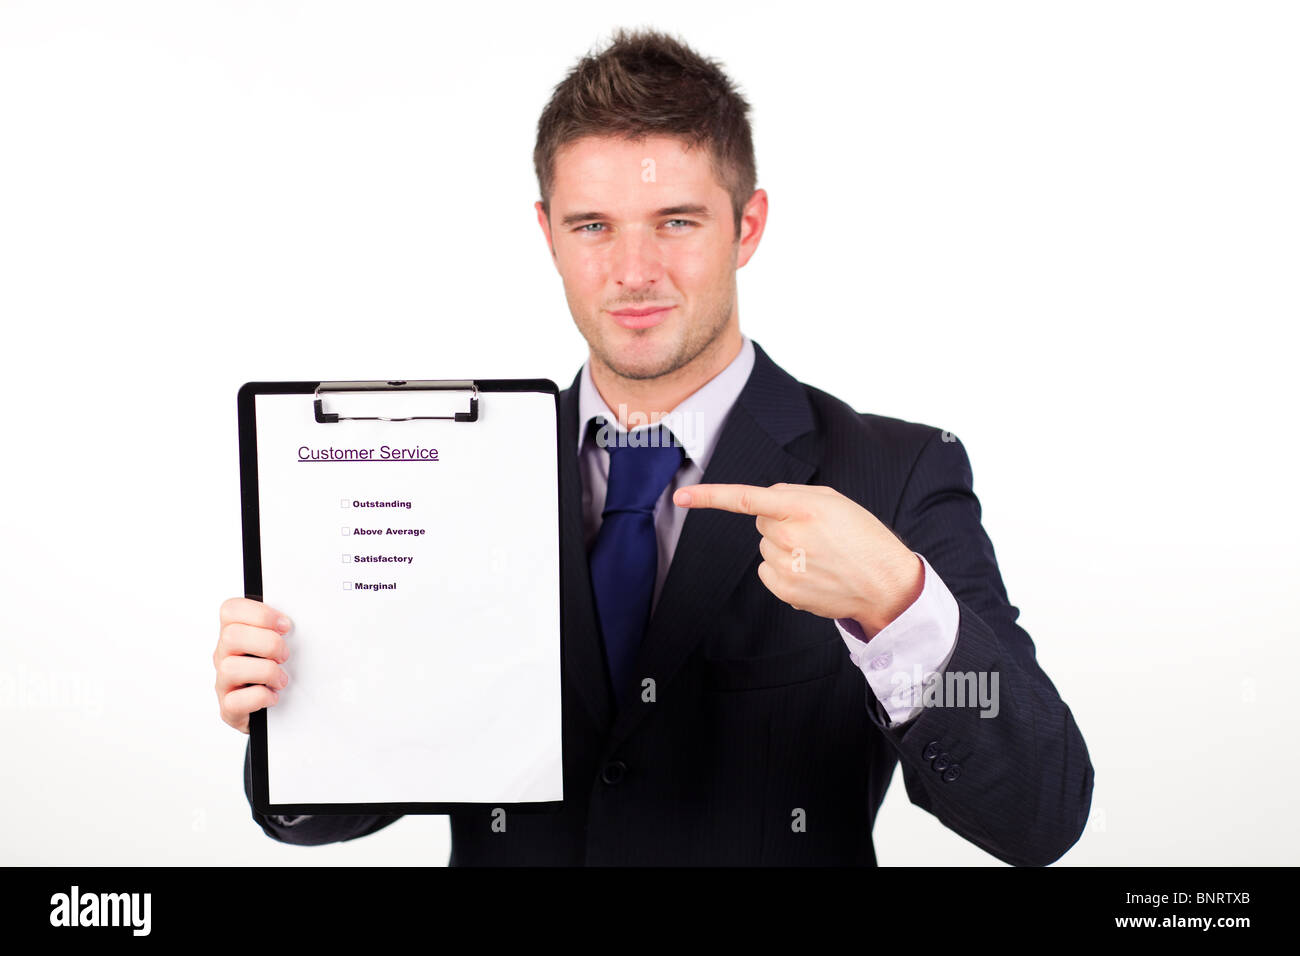 businessman with customer service report - Stock Image